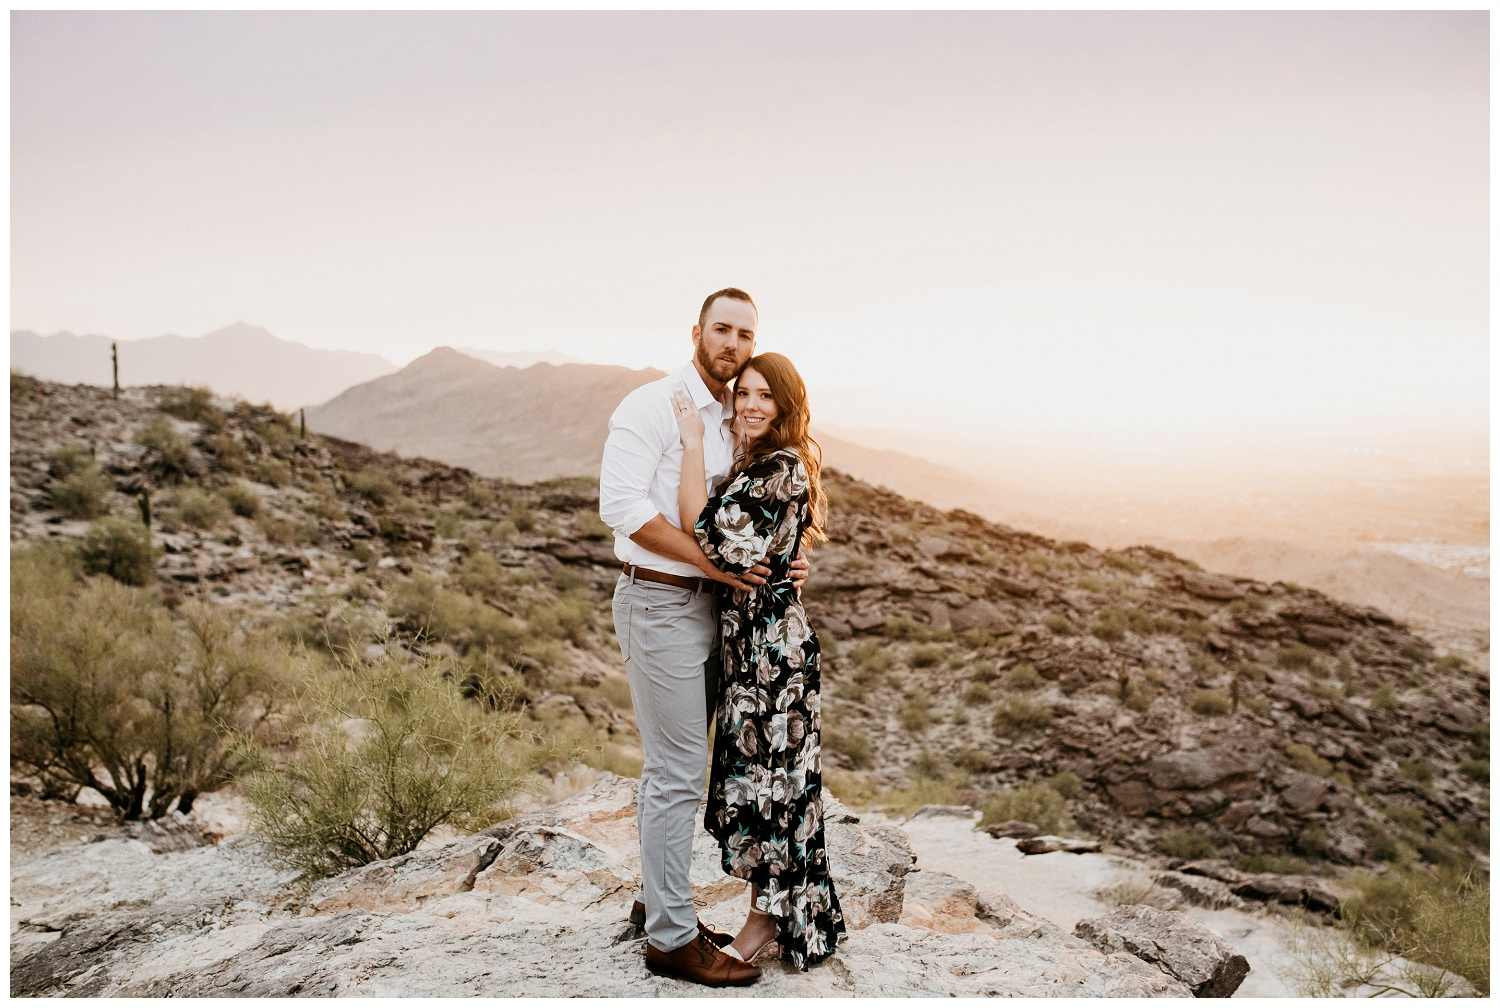 South Mountain Engagement Session Phoenix Wedding Photographer Ashtyn Nicole Photo 21